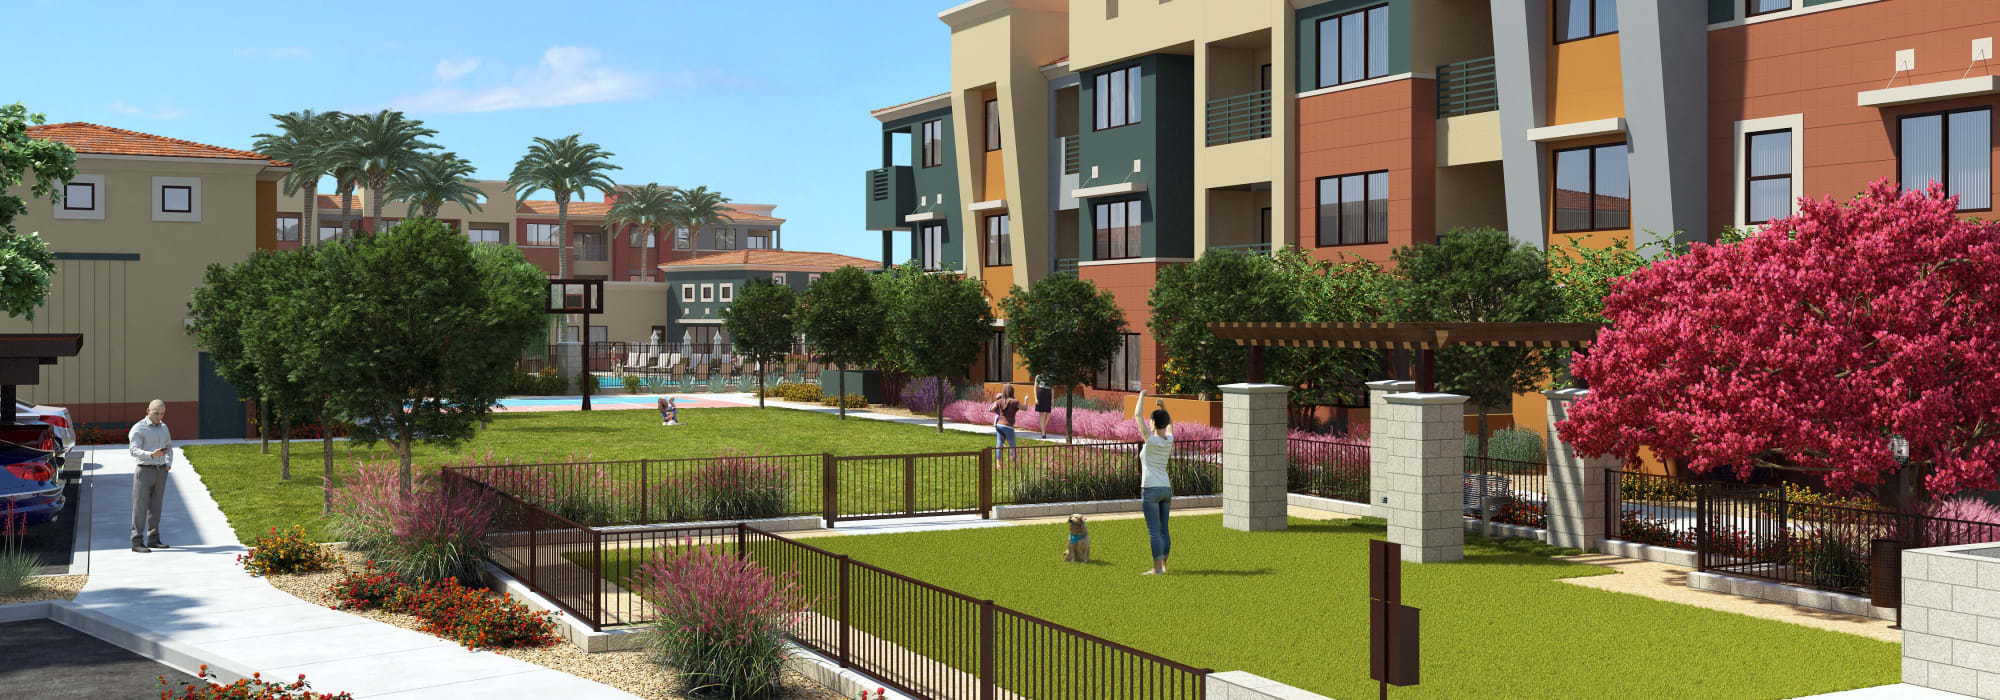 Rendering of large grass lawns, and beautiful manicure grounds at Villa Vita Apartments in Peoria, Arizona